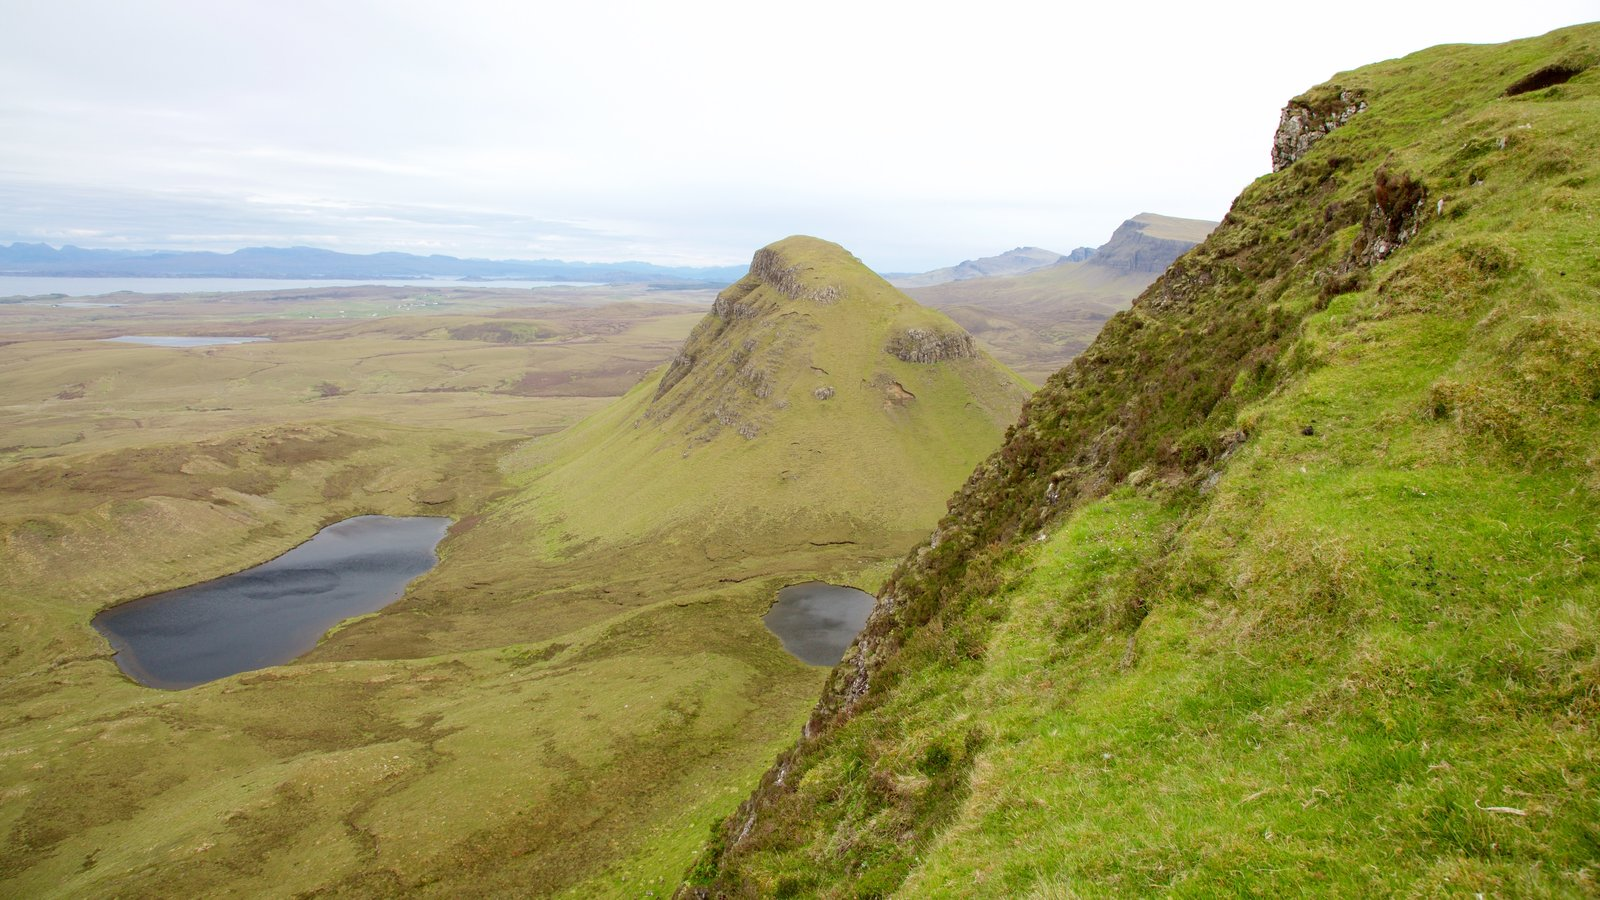 Quiraing which includes tranquil scenes, a pond and mountains